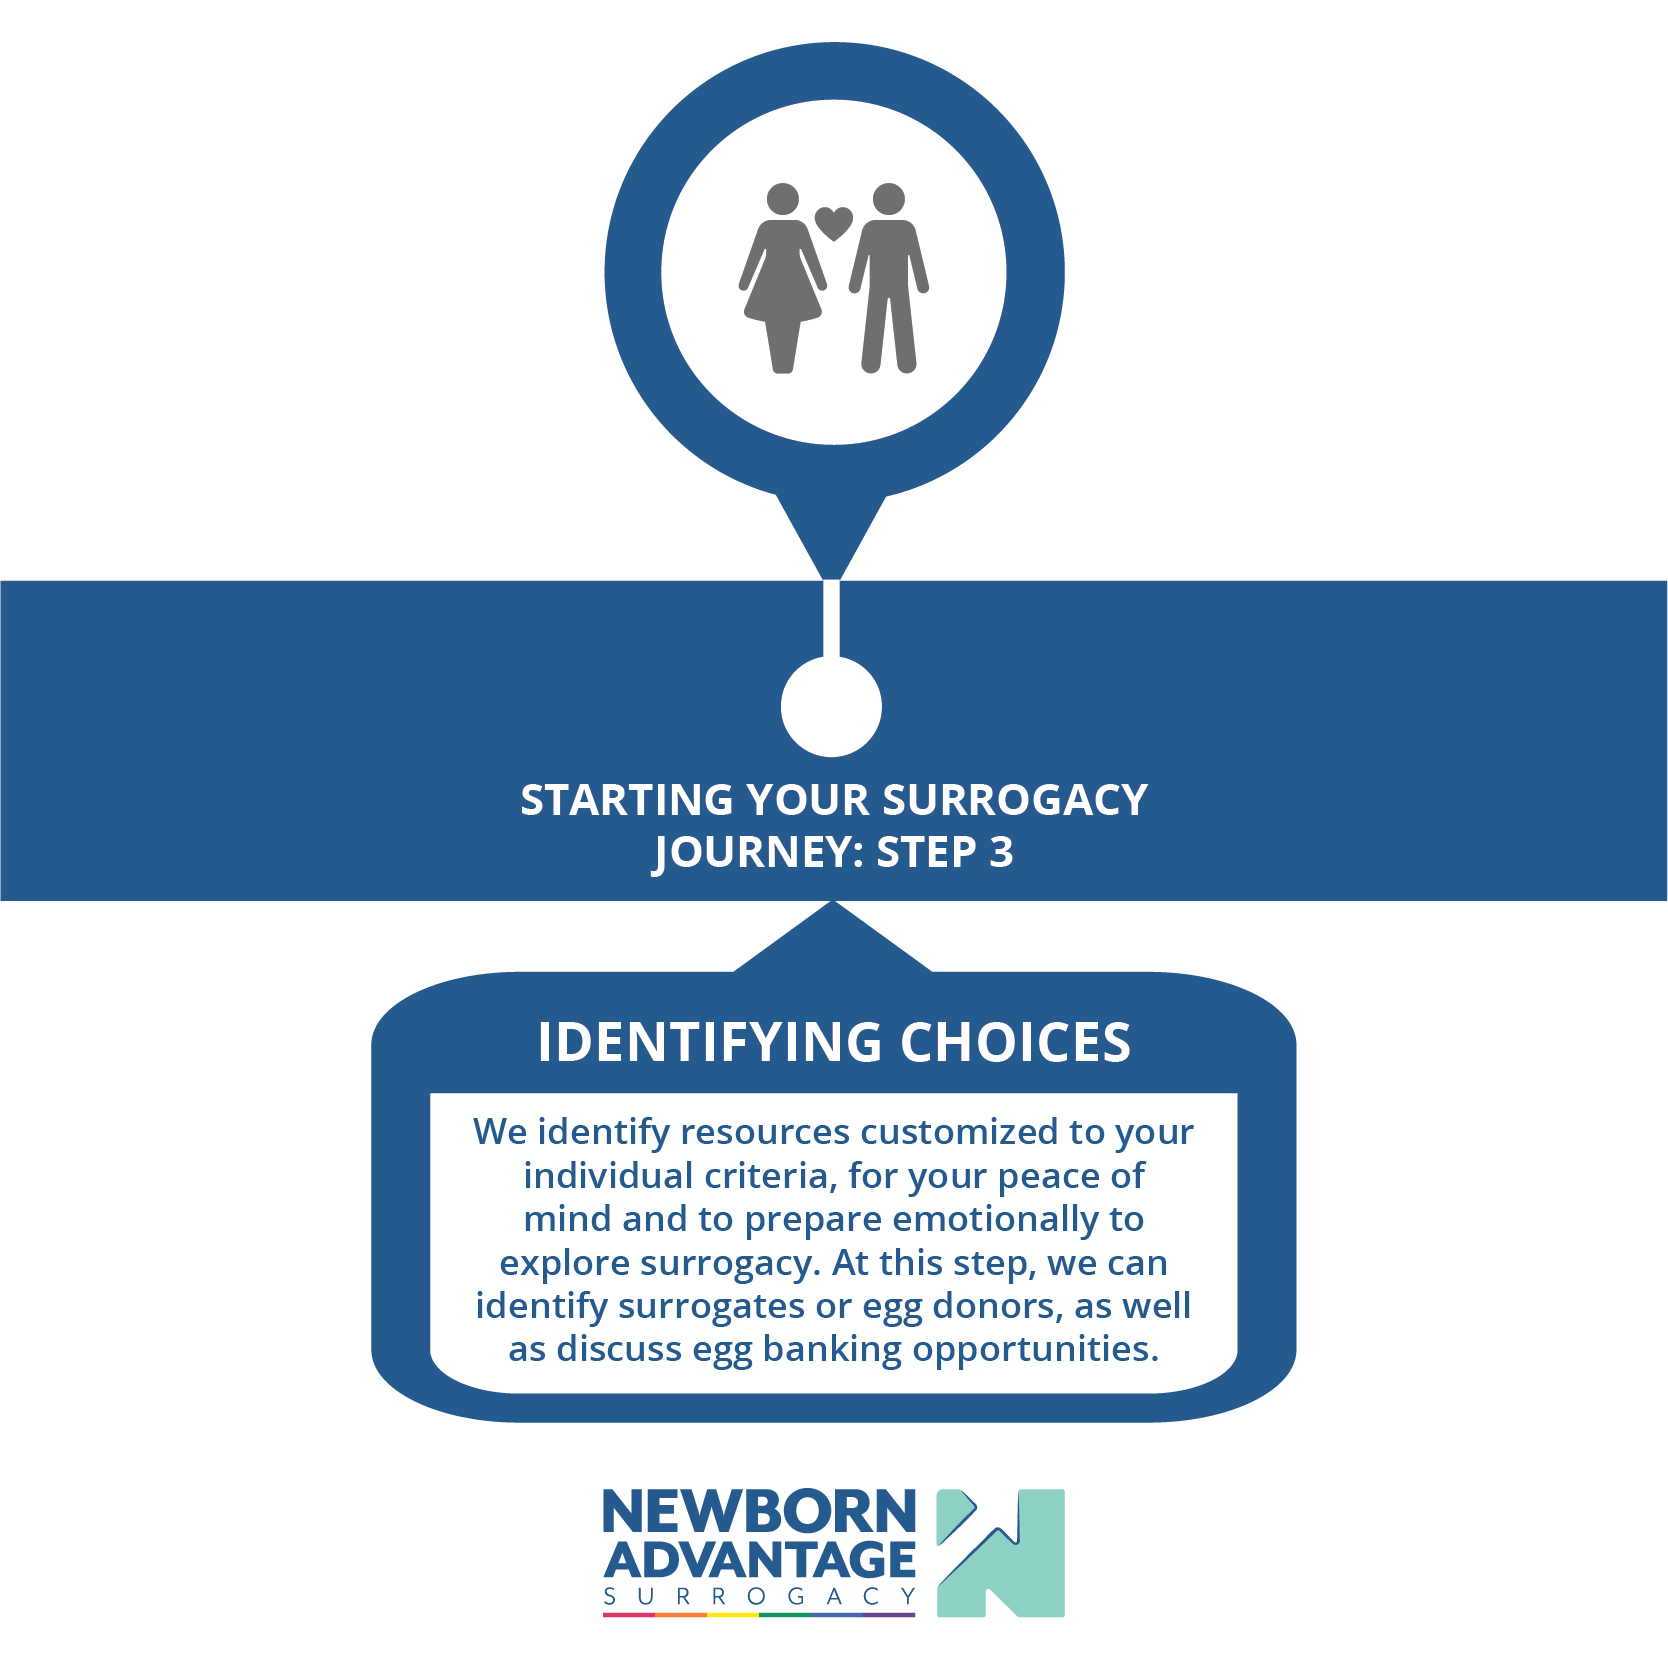 Newborn Advantage Surrogacy tailors its services and the